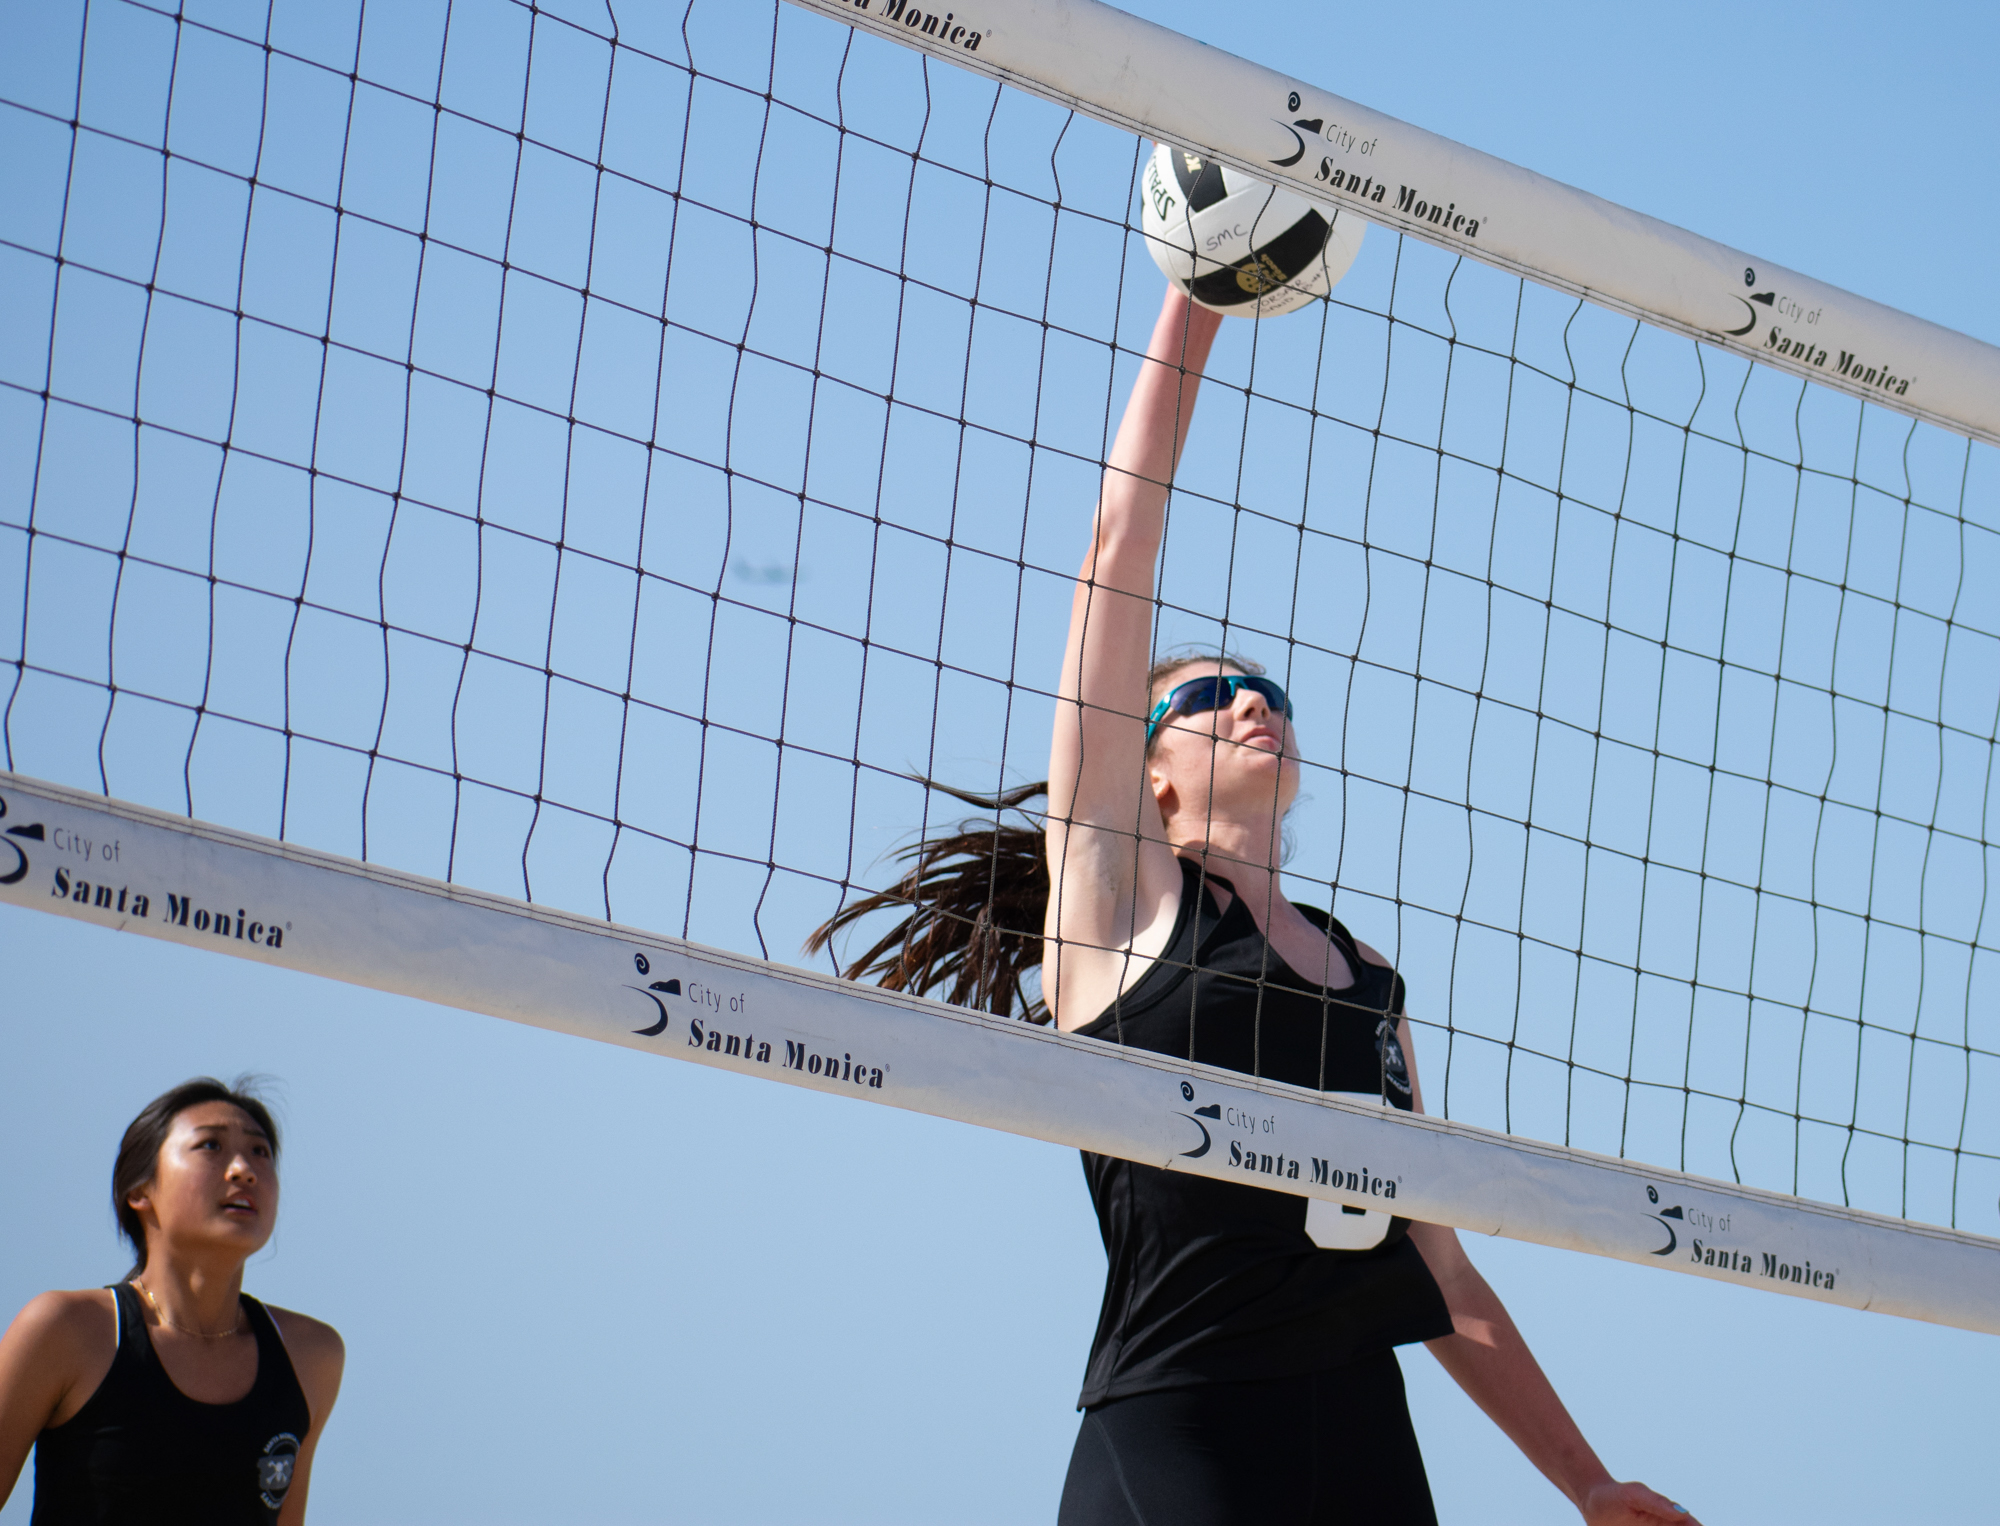 Santa Monica College Corsair Chelsea Bostwick (#3) attempts to spike the ball as partner Megan Yoon (#11) looks on during a conference game of beach volleyball in court one against the Ventura College Pirates at the Santa Monica beach on Friday, April 13, 2018 in Santa Monica, California. It was a 4-1 loss for the Corsairs, bringing their total to 2-11 for the season and it was this court brought the only win. (Ethan Lauren/Corsair Photo)